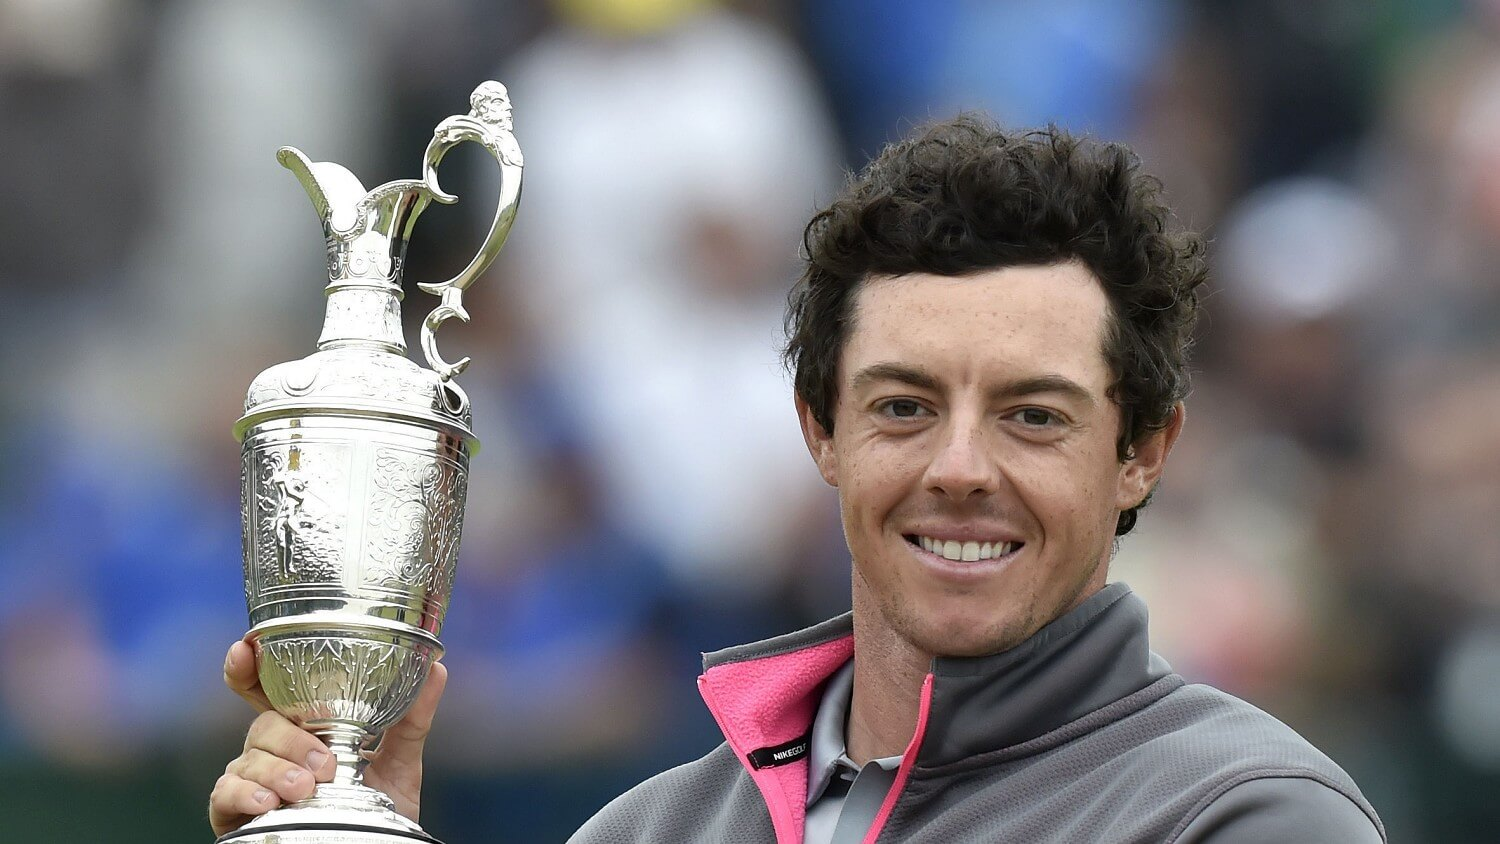 Rory Mcllroy - 10 richest sportspersons in the world right now